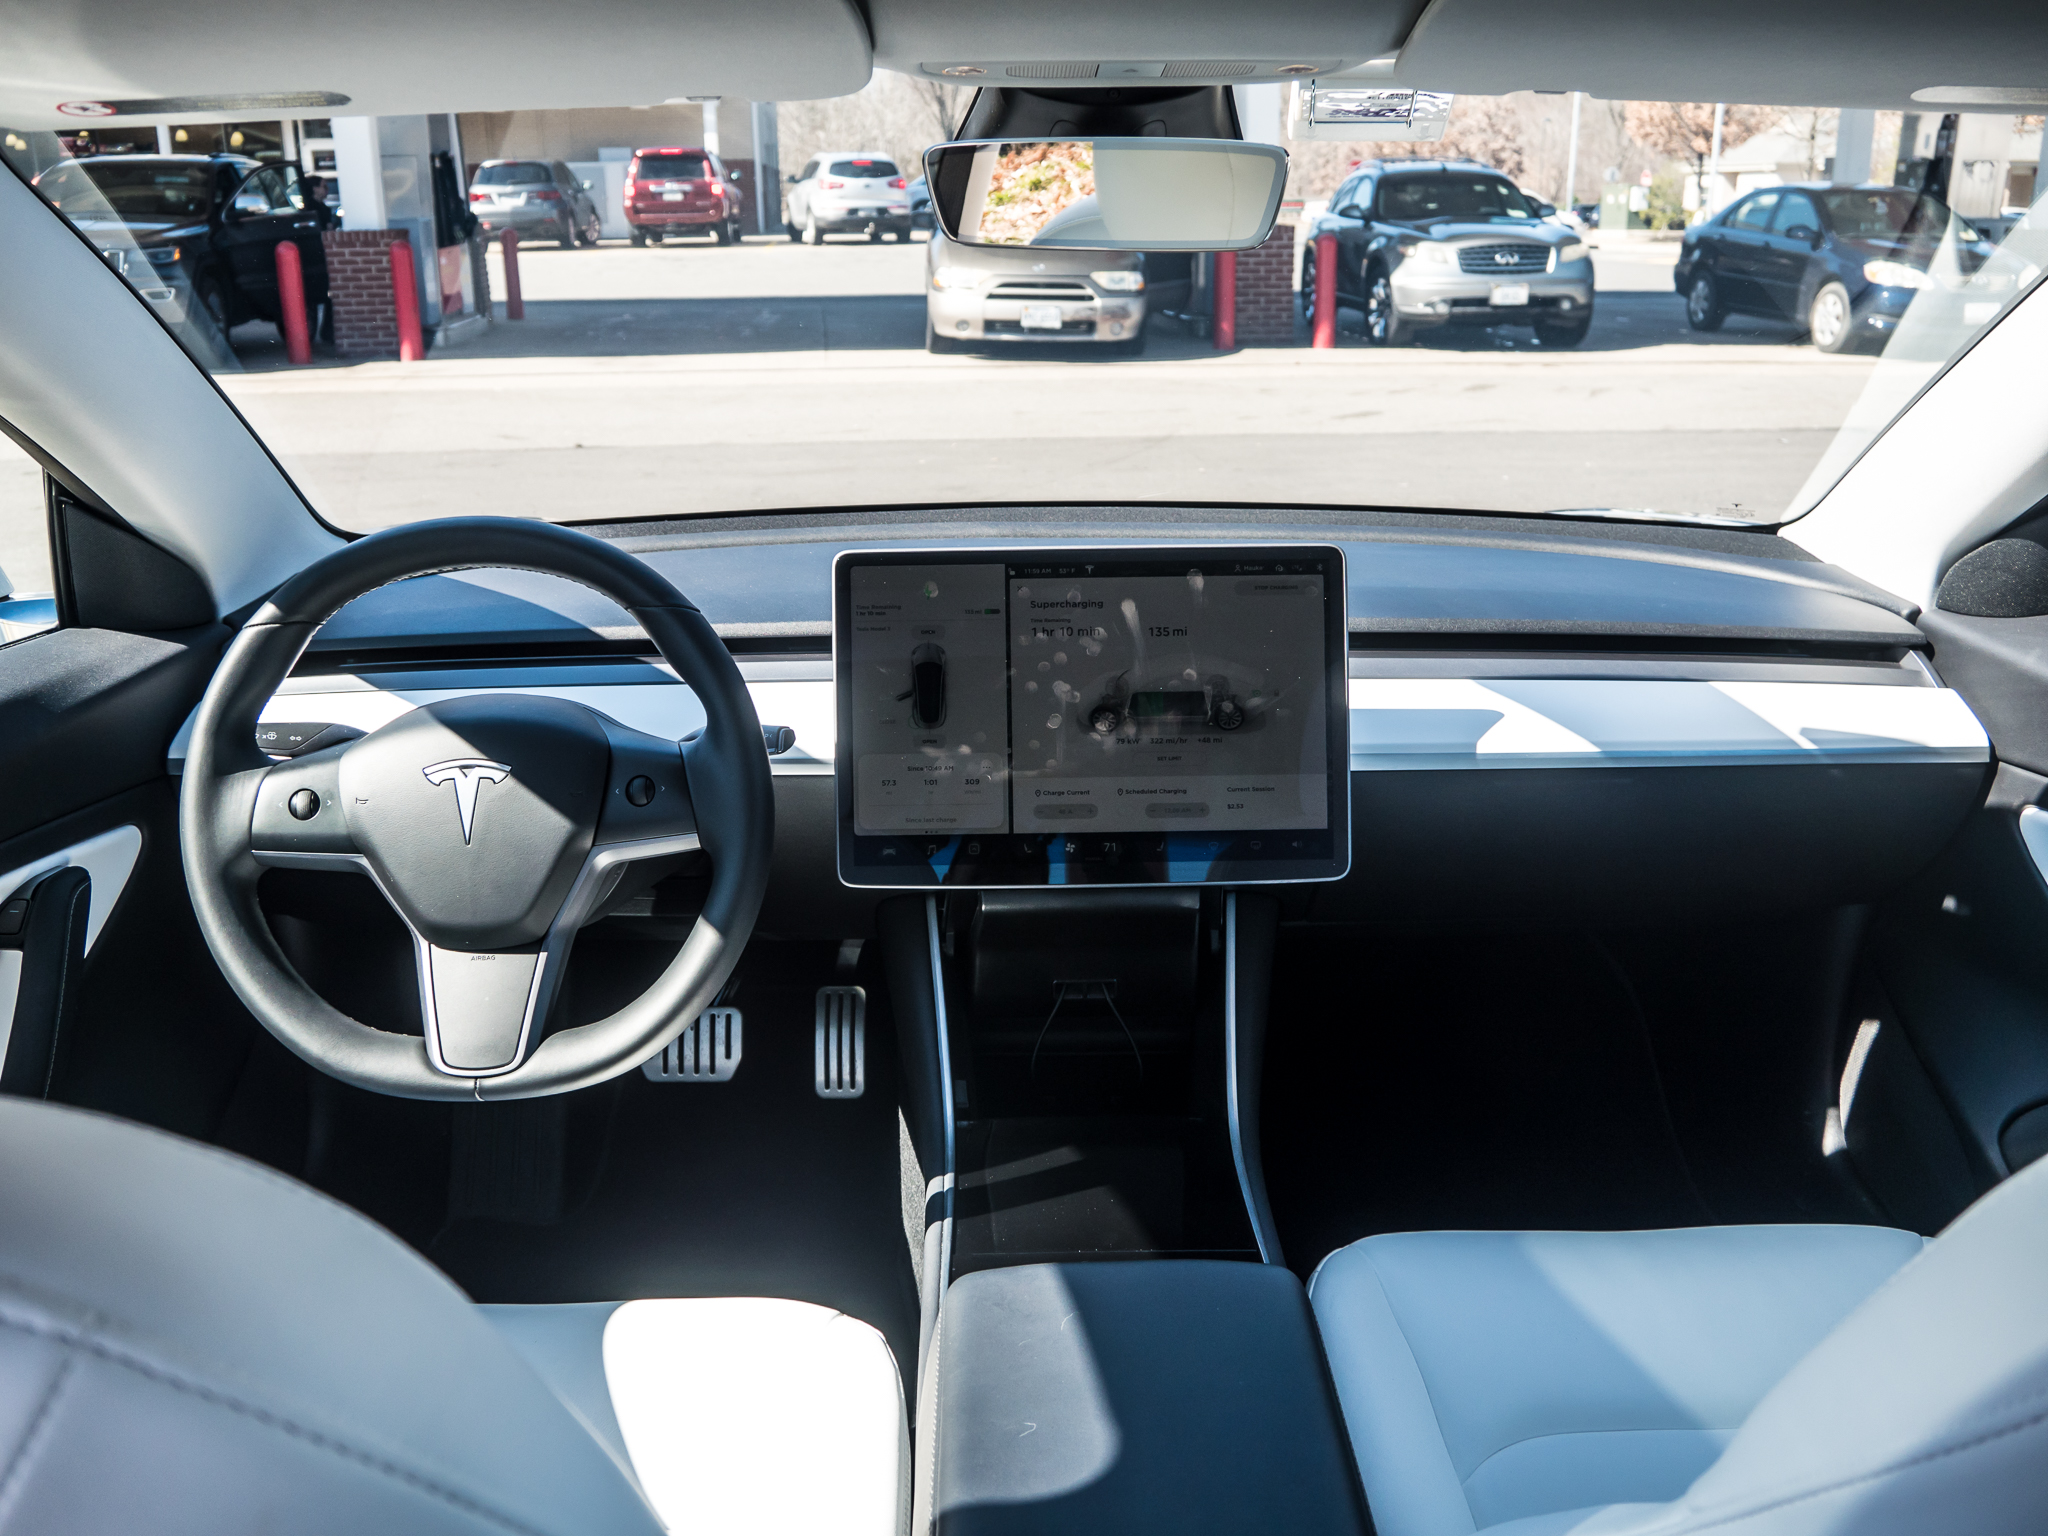 The interior of the Model 3 Performance is not really in keeping with a car that has a sticker price as optioned of almost $70,000. But take away the too-white pleather, the power seats, and the finicky console lids, and I think it's more than adequate for a $35,000 EV this good.